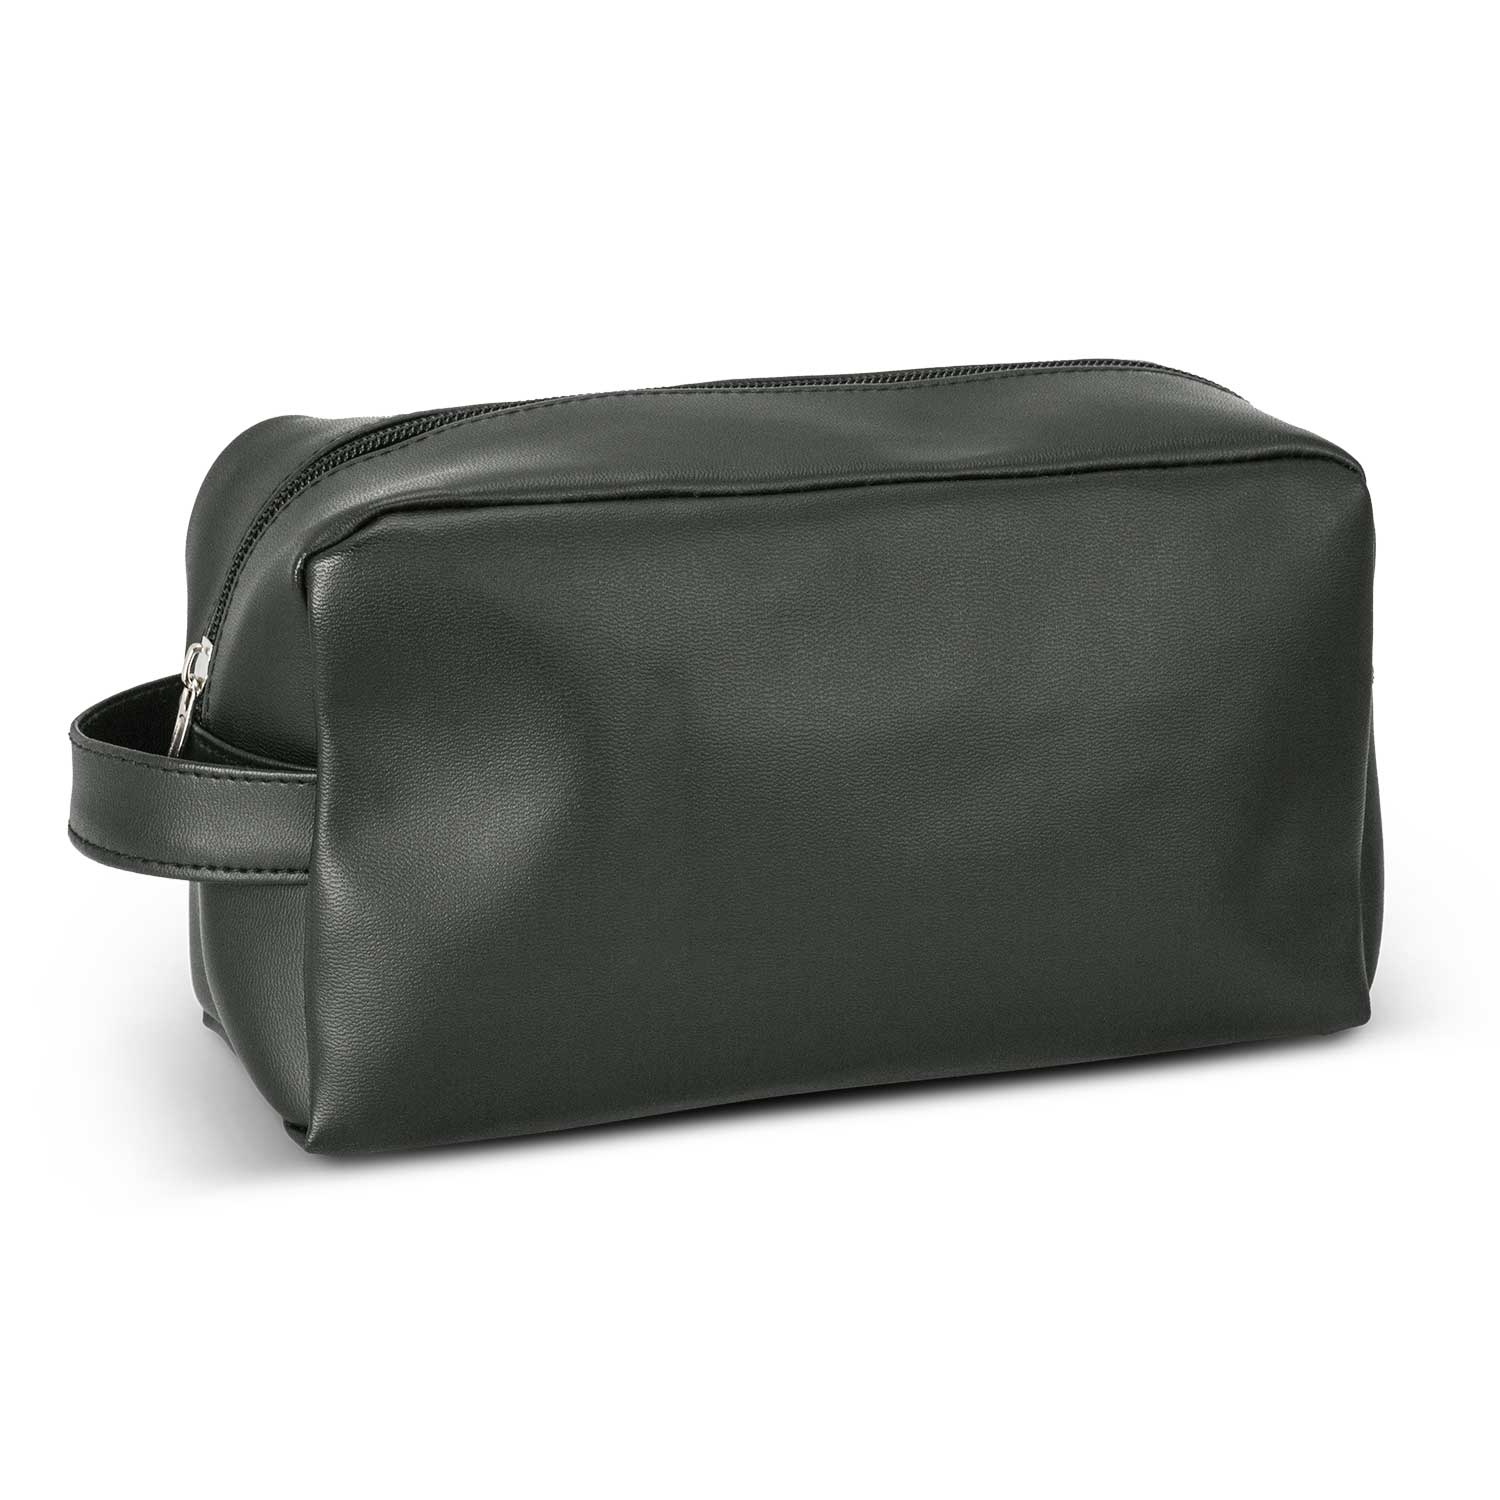 Portland Toiletry Bag